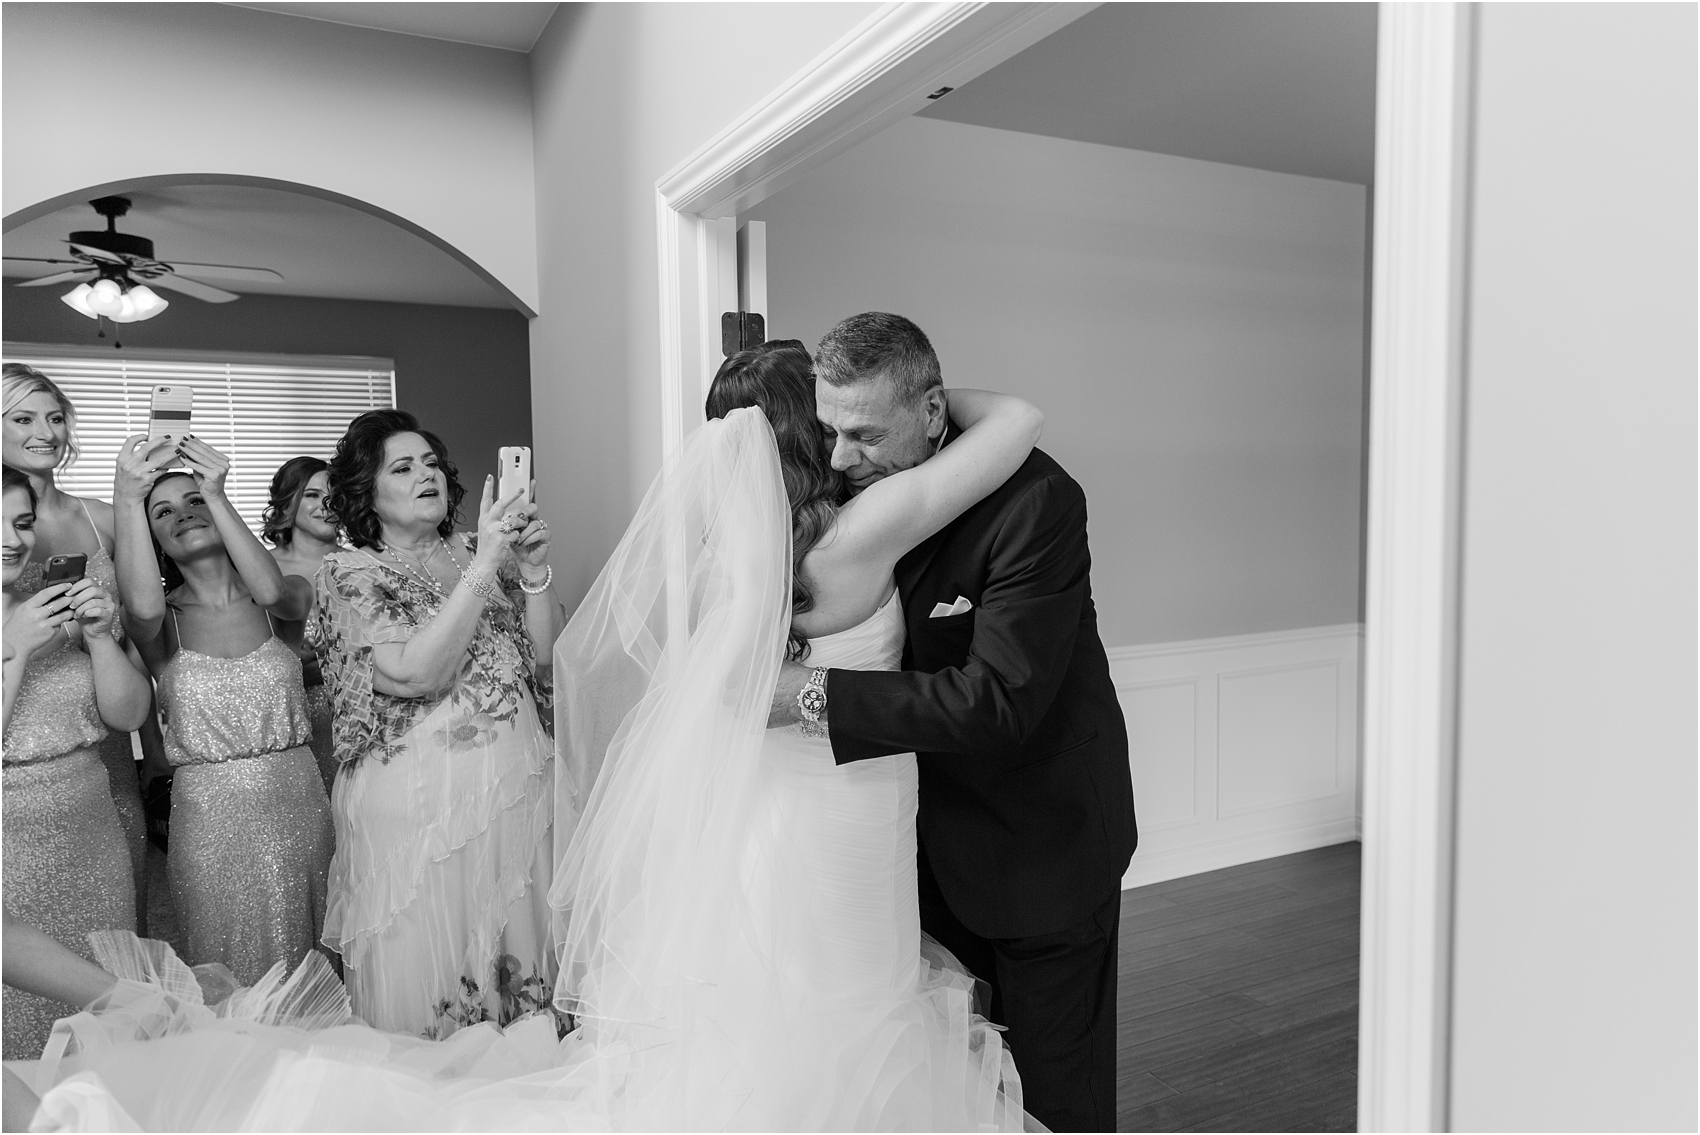 father-and-bride-share-emotional-first-look-on-wedding-day-photos-in-detroit-michigan-by-courtney-carolyn-photography_0016.jpg